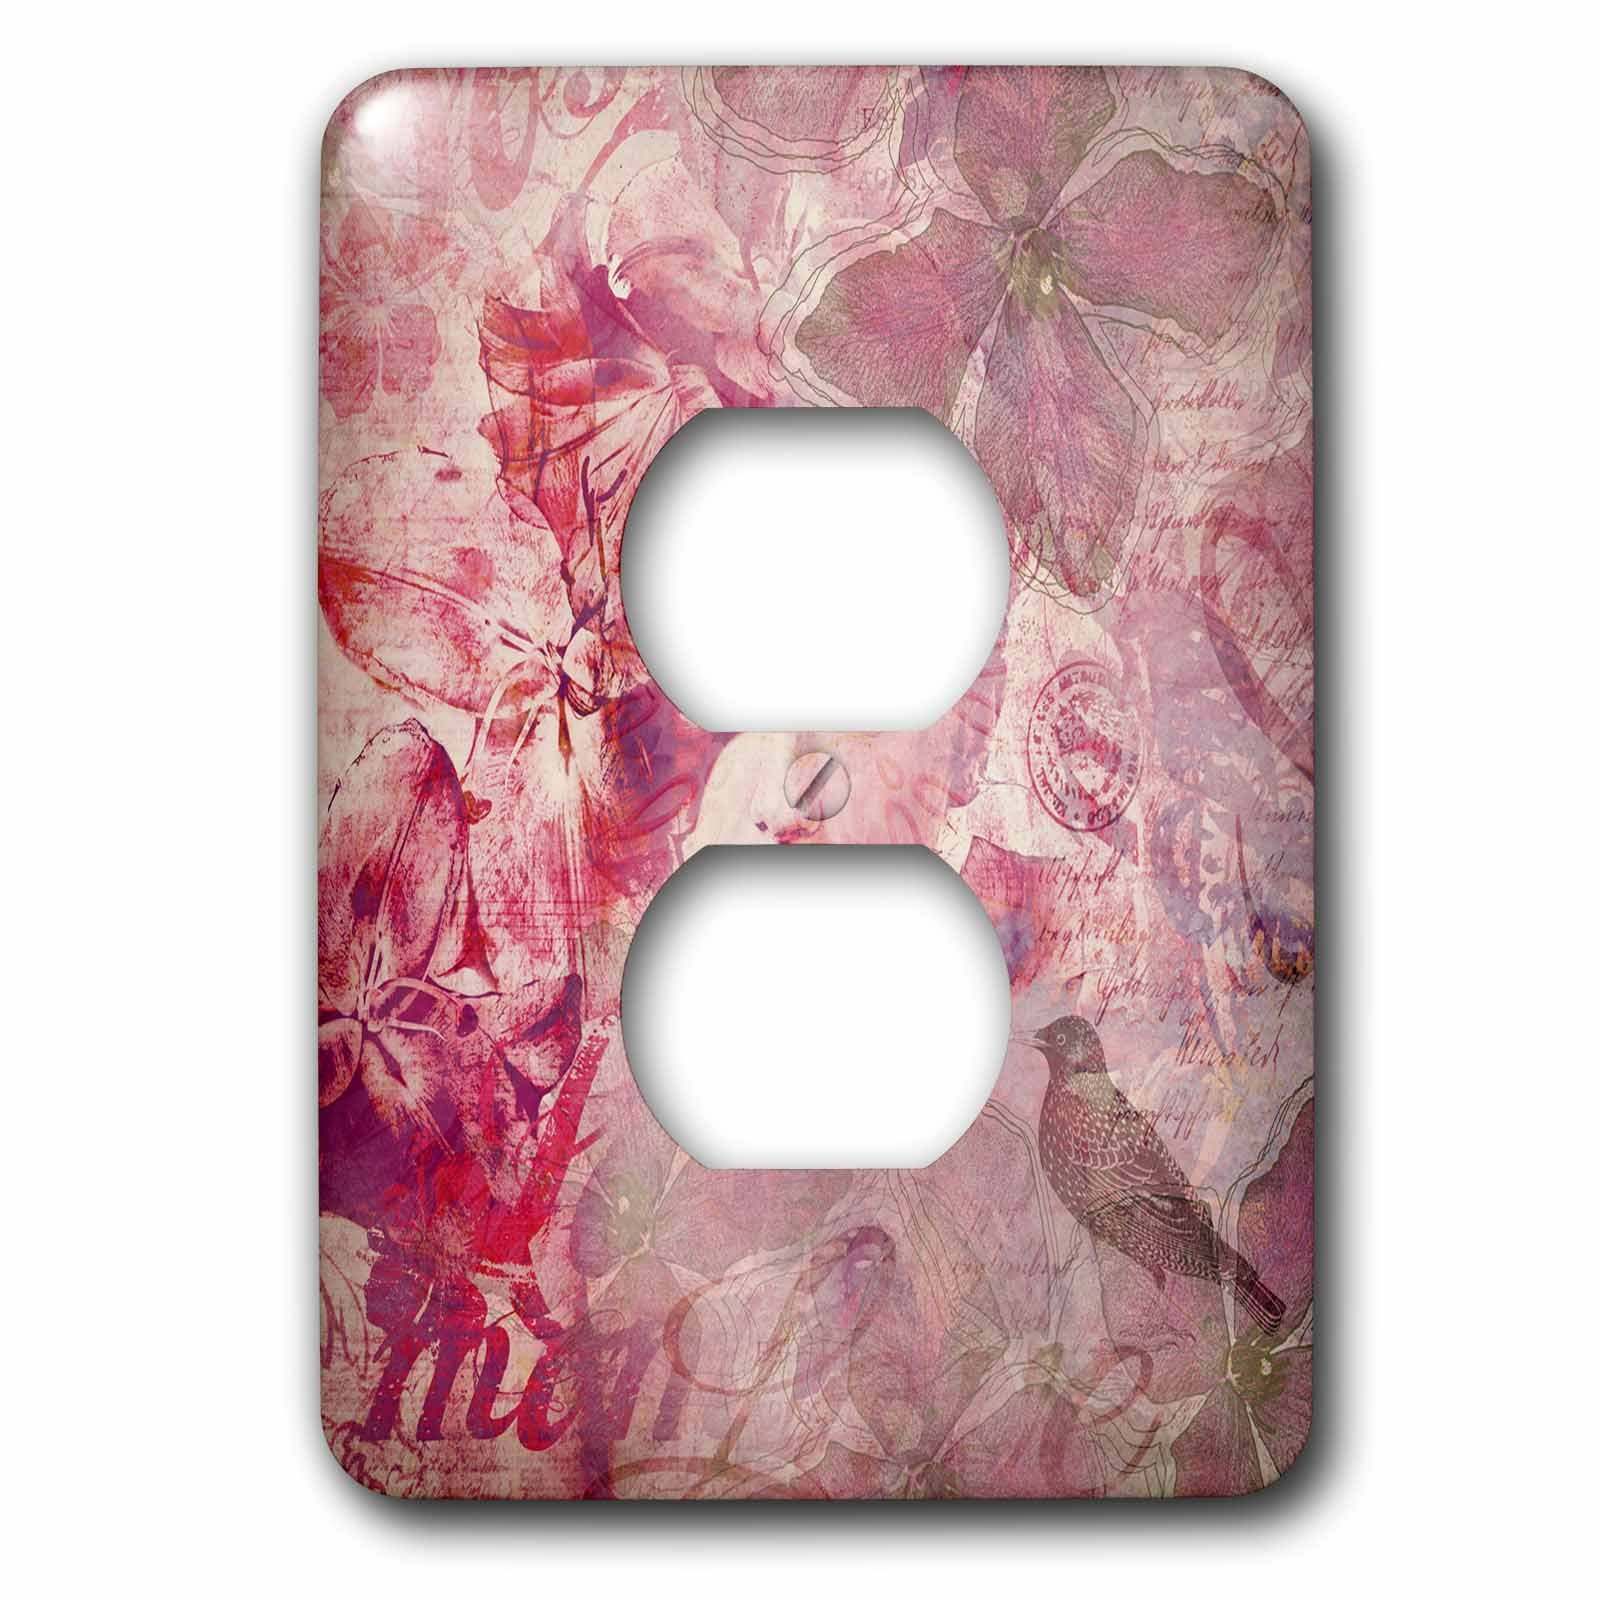 3dRose Andrea Haase Art Illustration - Women Face Vintage Illustration With Floral Elements And Typography - Light Switch Covers - 2 plug outlet cover (lsp_268116_6)